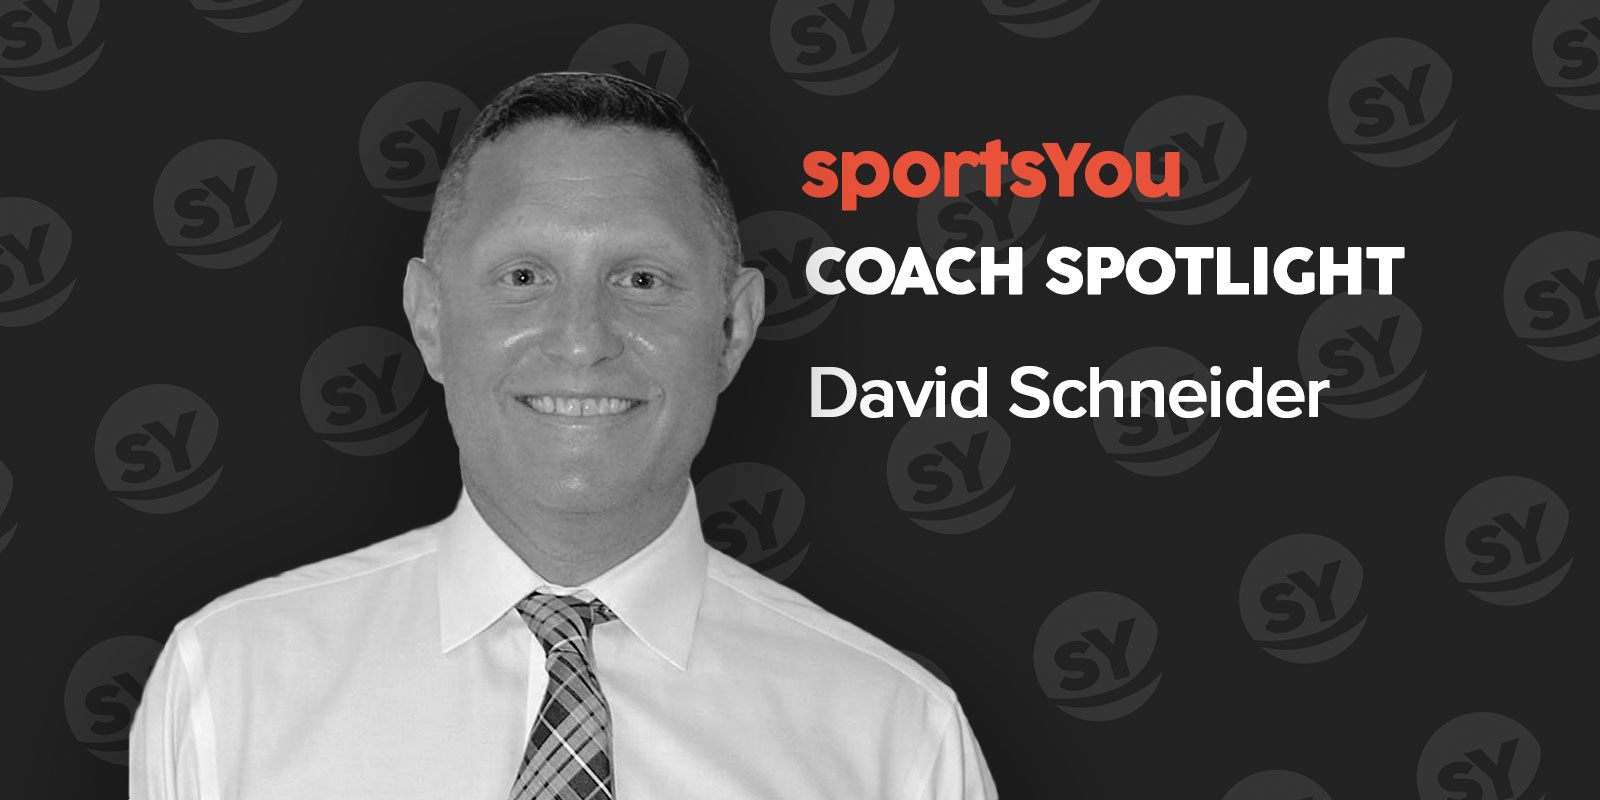 sportsYou Coach Spotlight: Q&A with Coach David Schneider